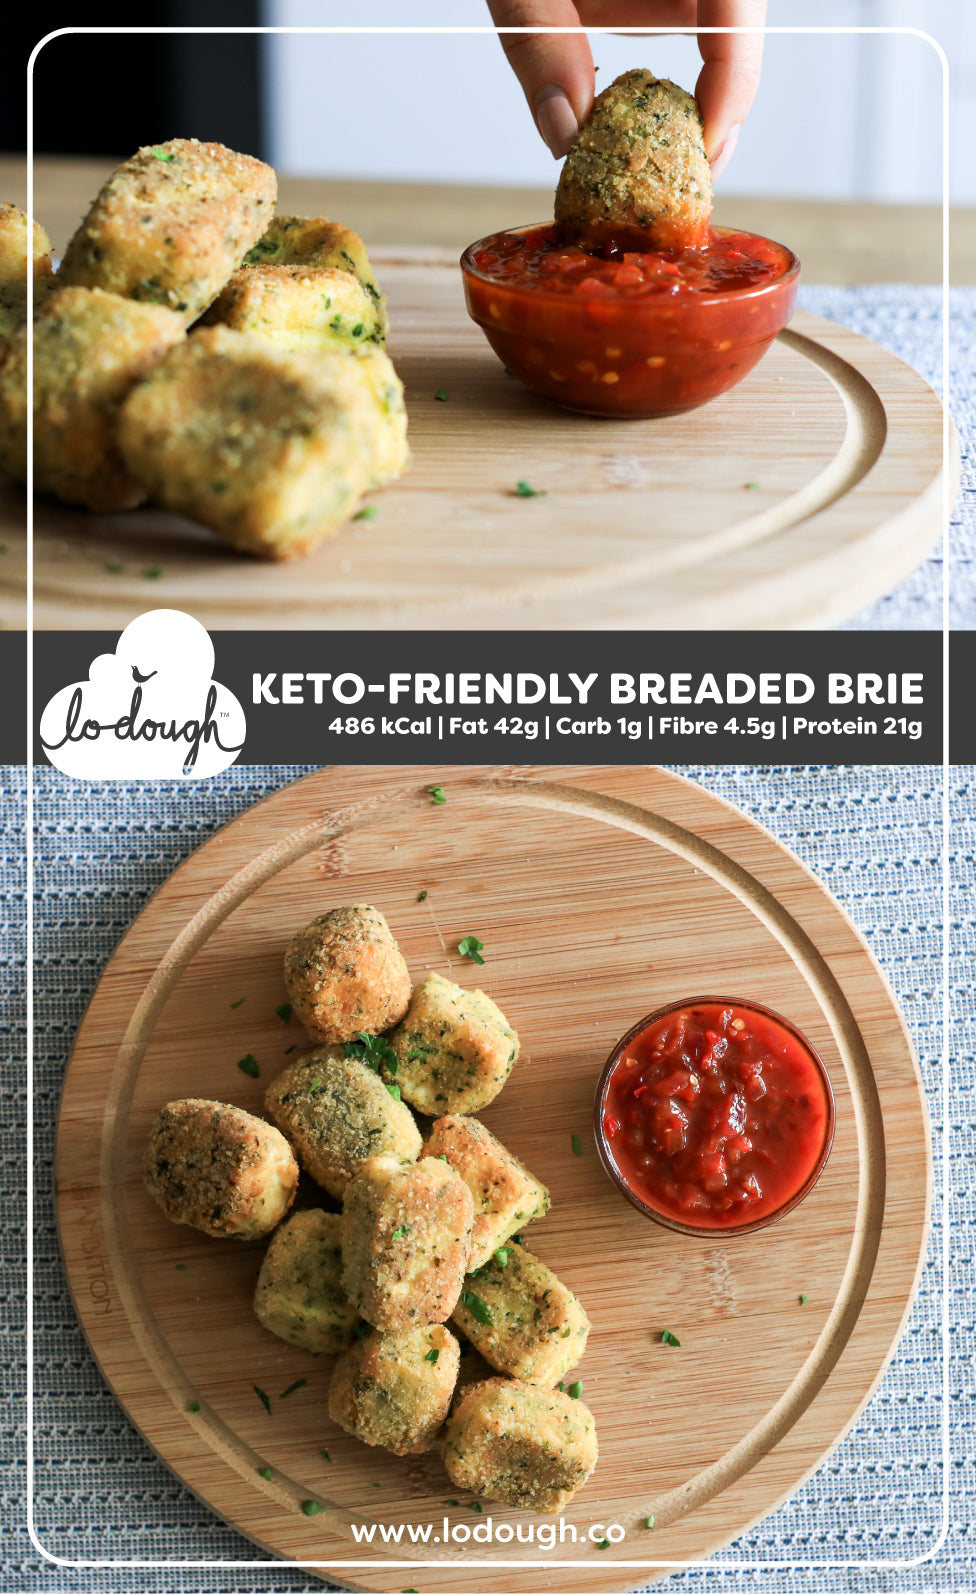 Breaded Brie